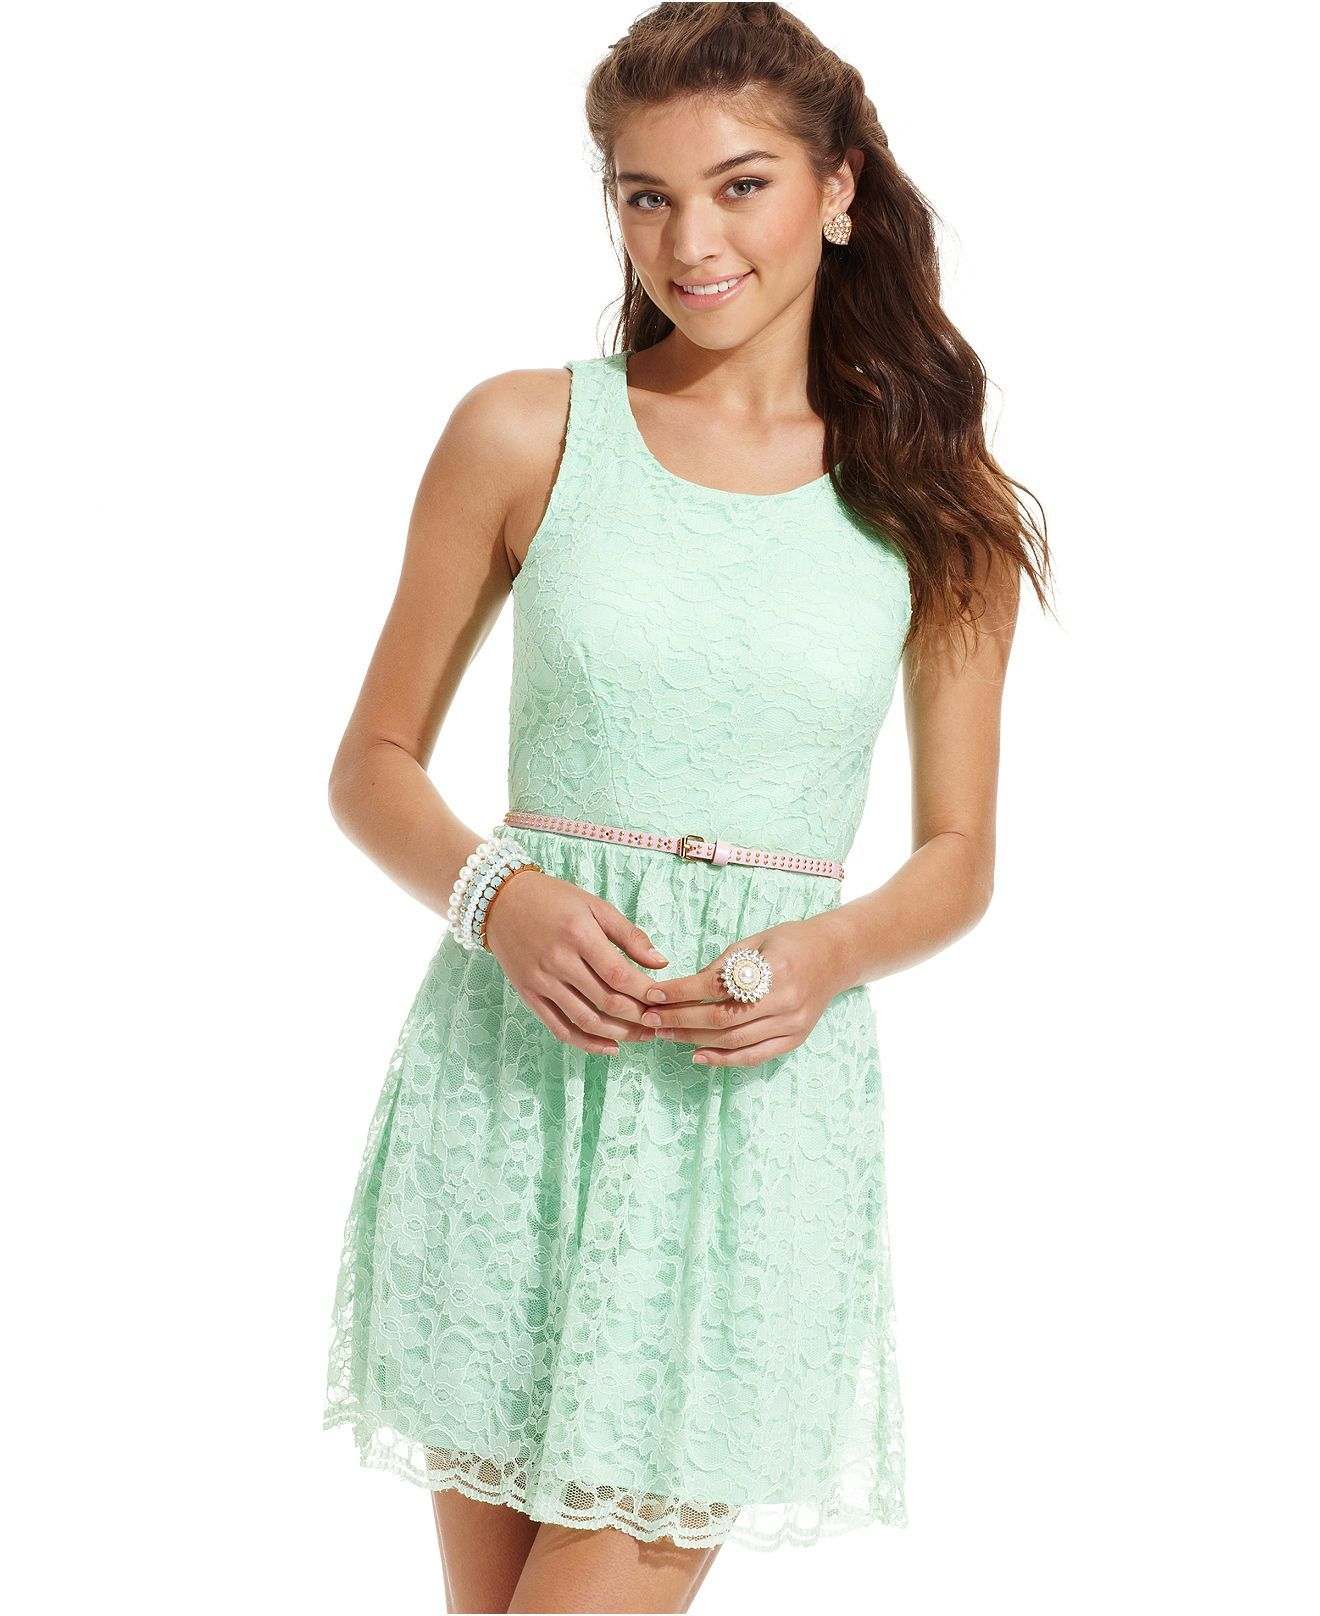 Kohl's juniors' clothing offers a large variety of trendy name brands for any occasion. Find cute wedges for upcoming formals and parties so you can dance the night away in style. Show off the latest skinny juniors' jeans at school, or mix and match jackets and blazers with bold tops for a fresh look.